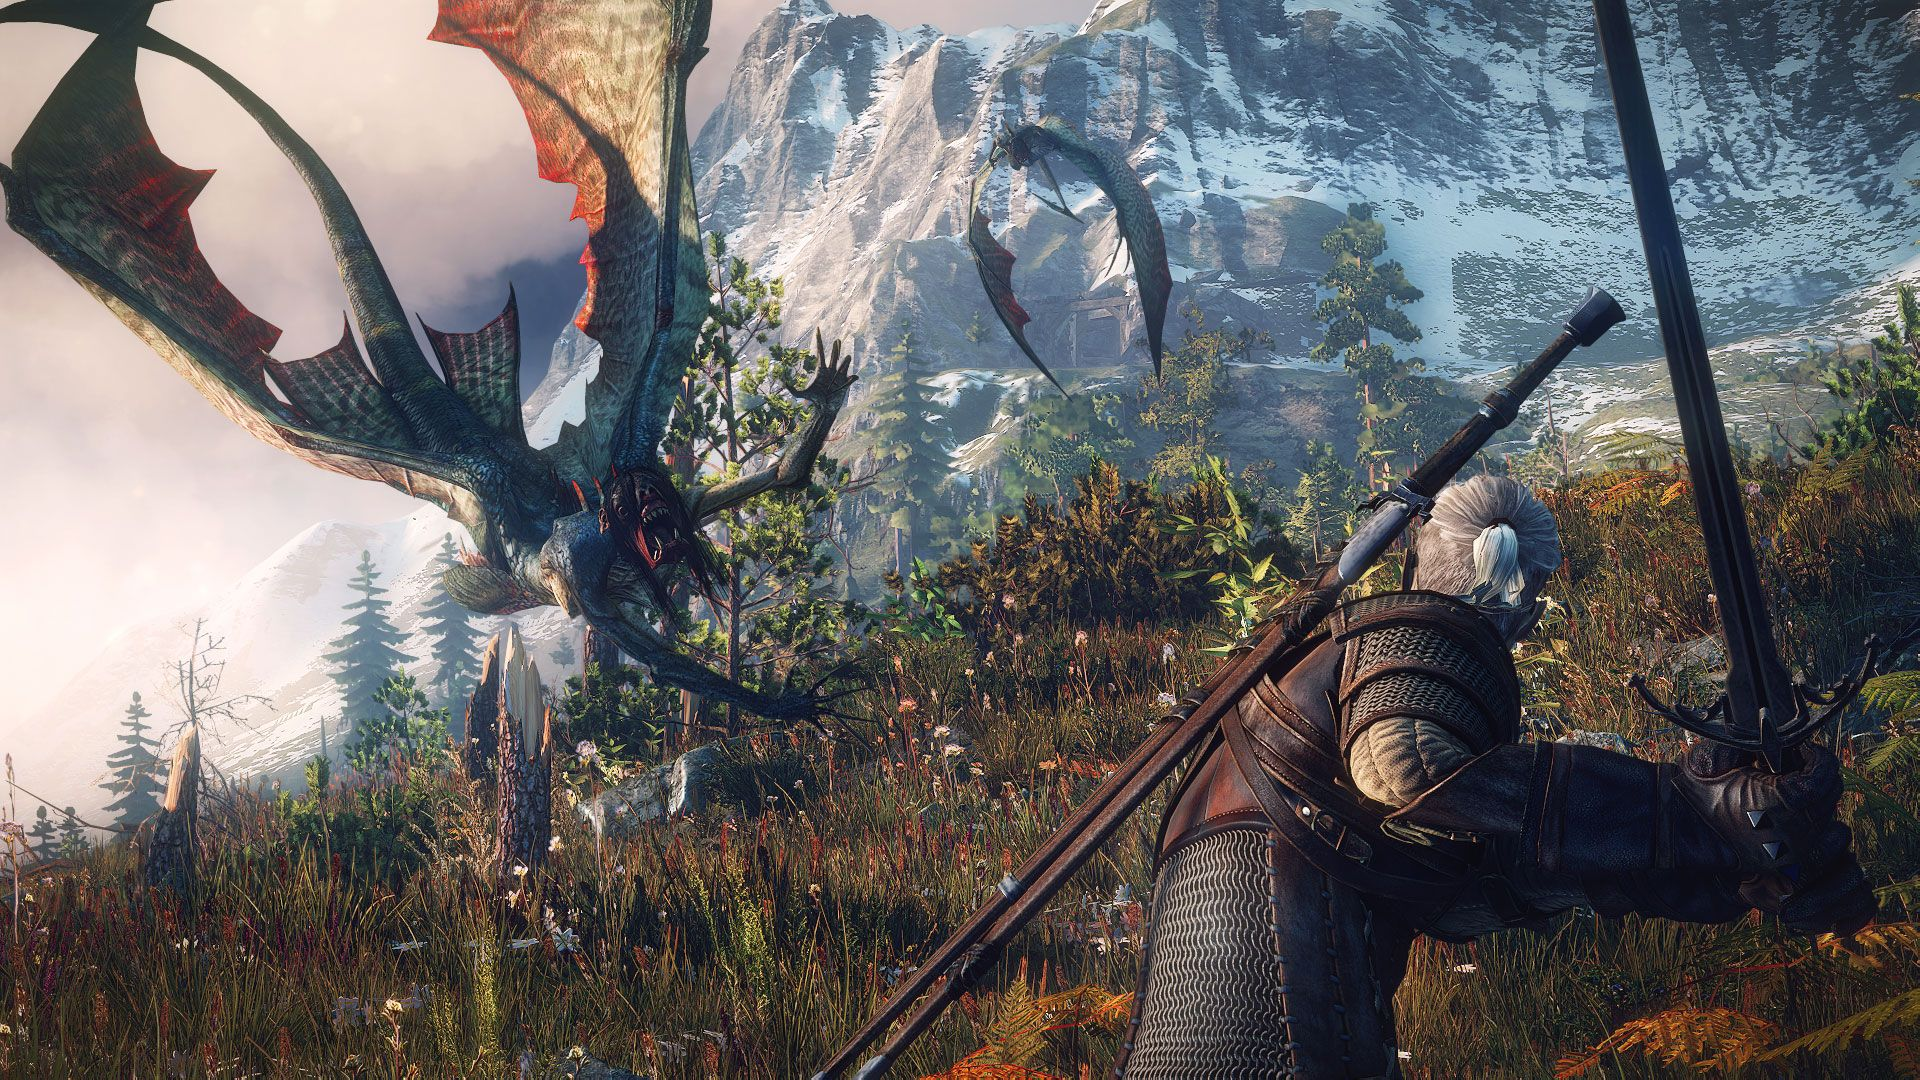 Witcher 3 Behind The Scenes Video Highlights Music And Sound Effects The Witcher 3 Wild Hunt The sirens may look beautiful in the water but once they re out of it they change into deadly flying creatures..0 1